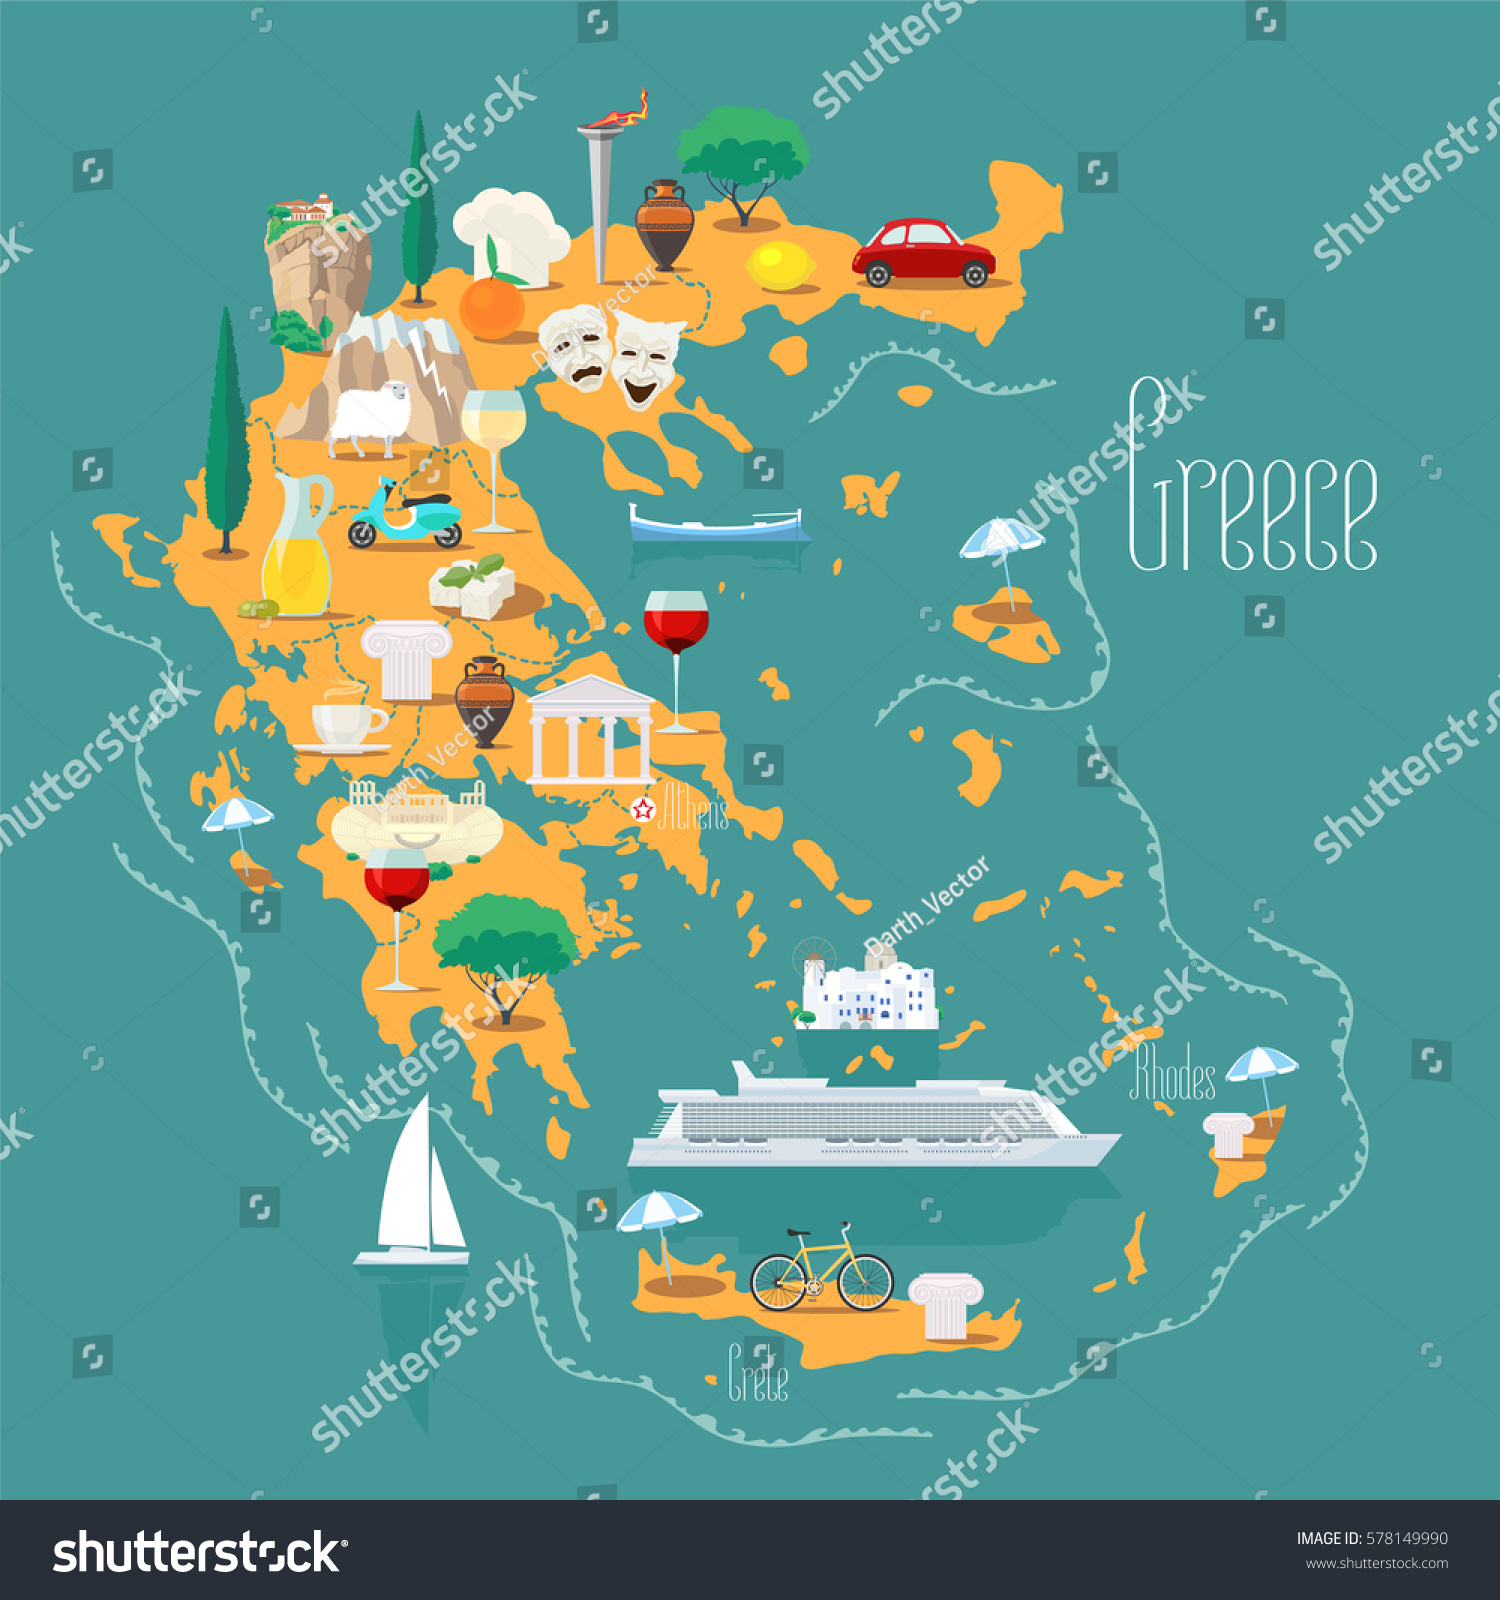 mount of olives map with Map Greece Islands Vector Illustration Design 578149990 on Jordan Israel Itinerary as well Anafi as well Jerusalem Day 3 in addition Jerusalem additionally Maps.